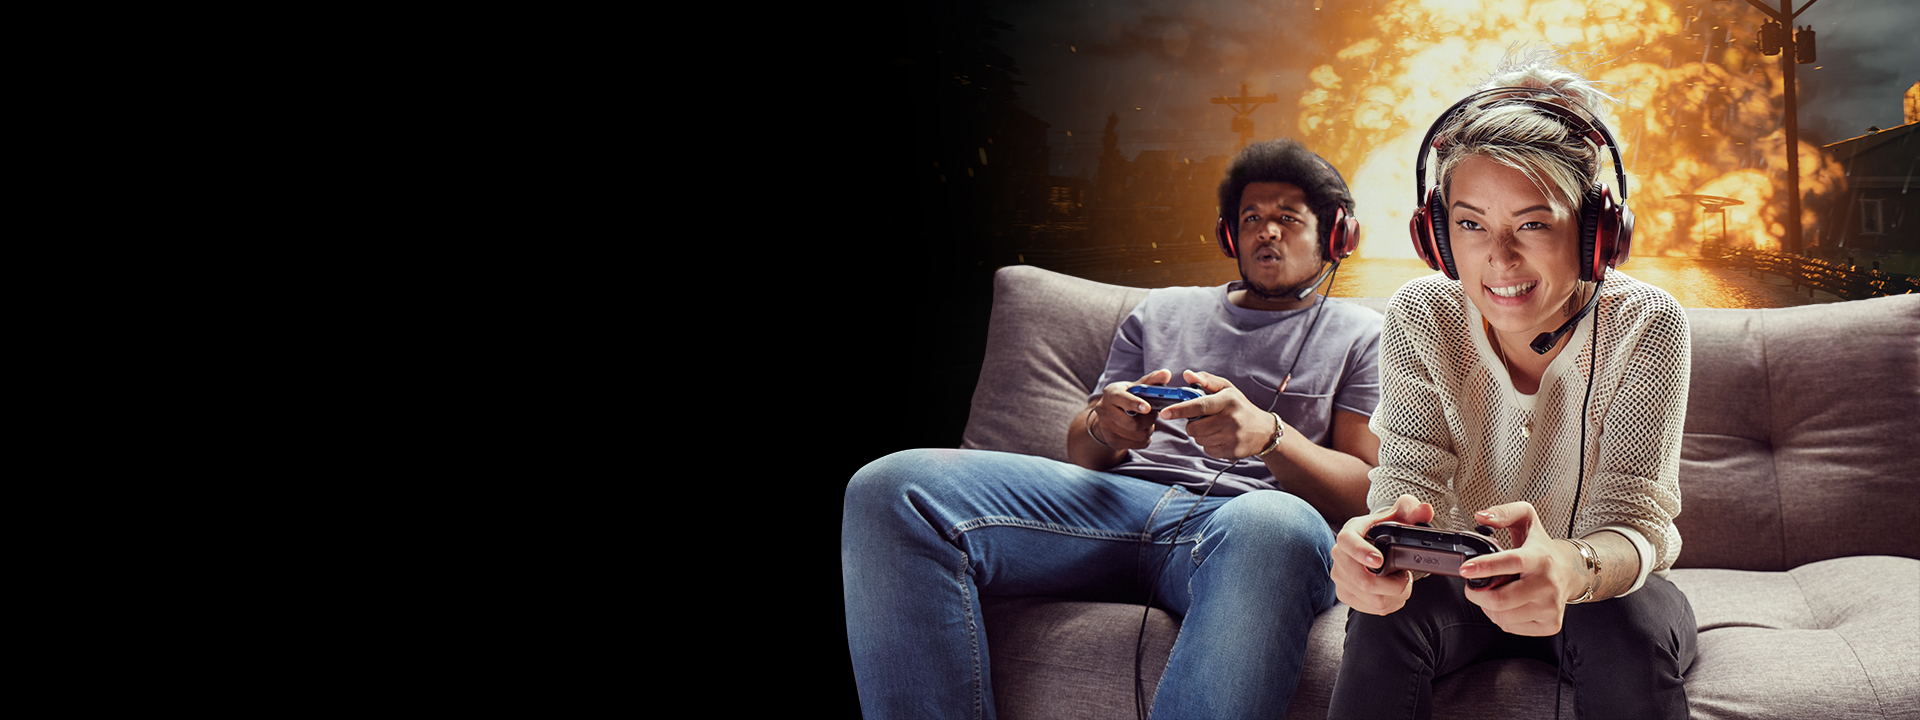 Two gamers sitting on a couch, immersed in an explosive Xbox One game